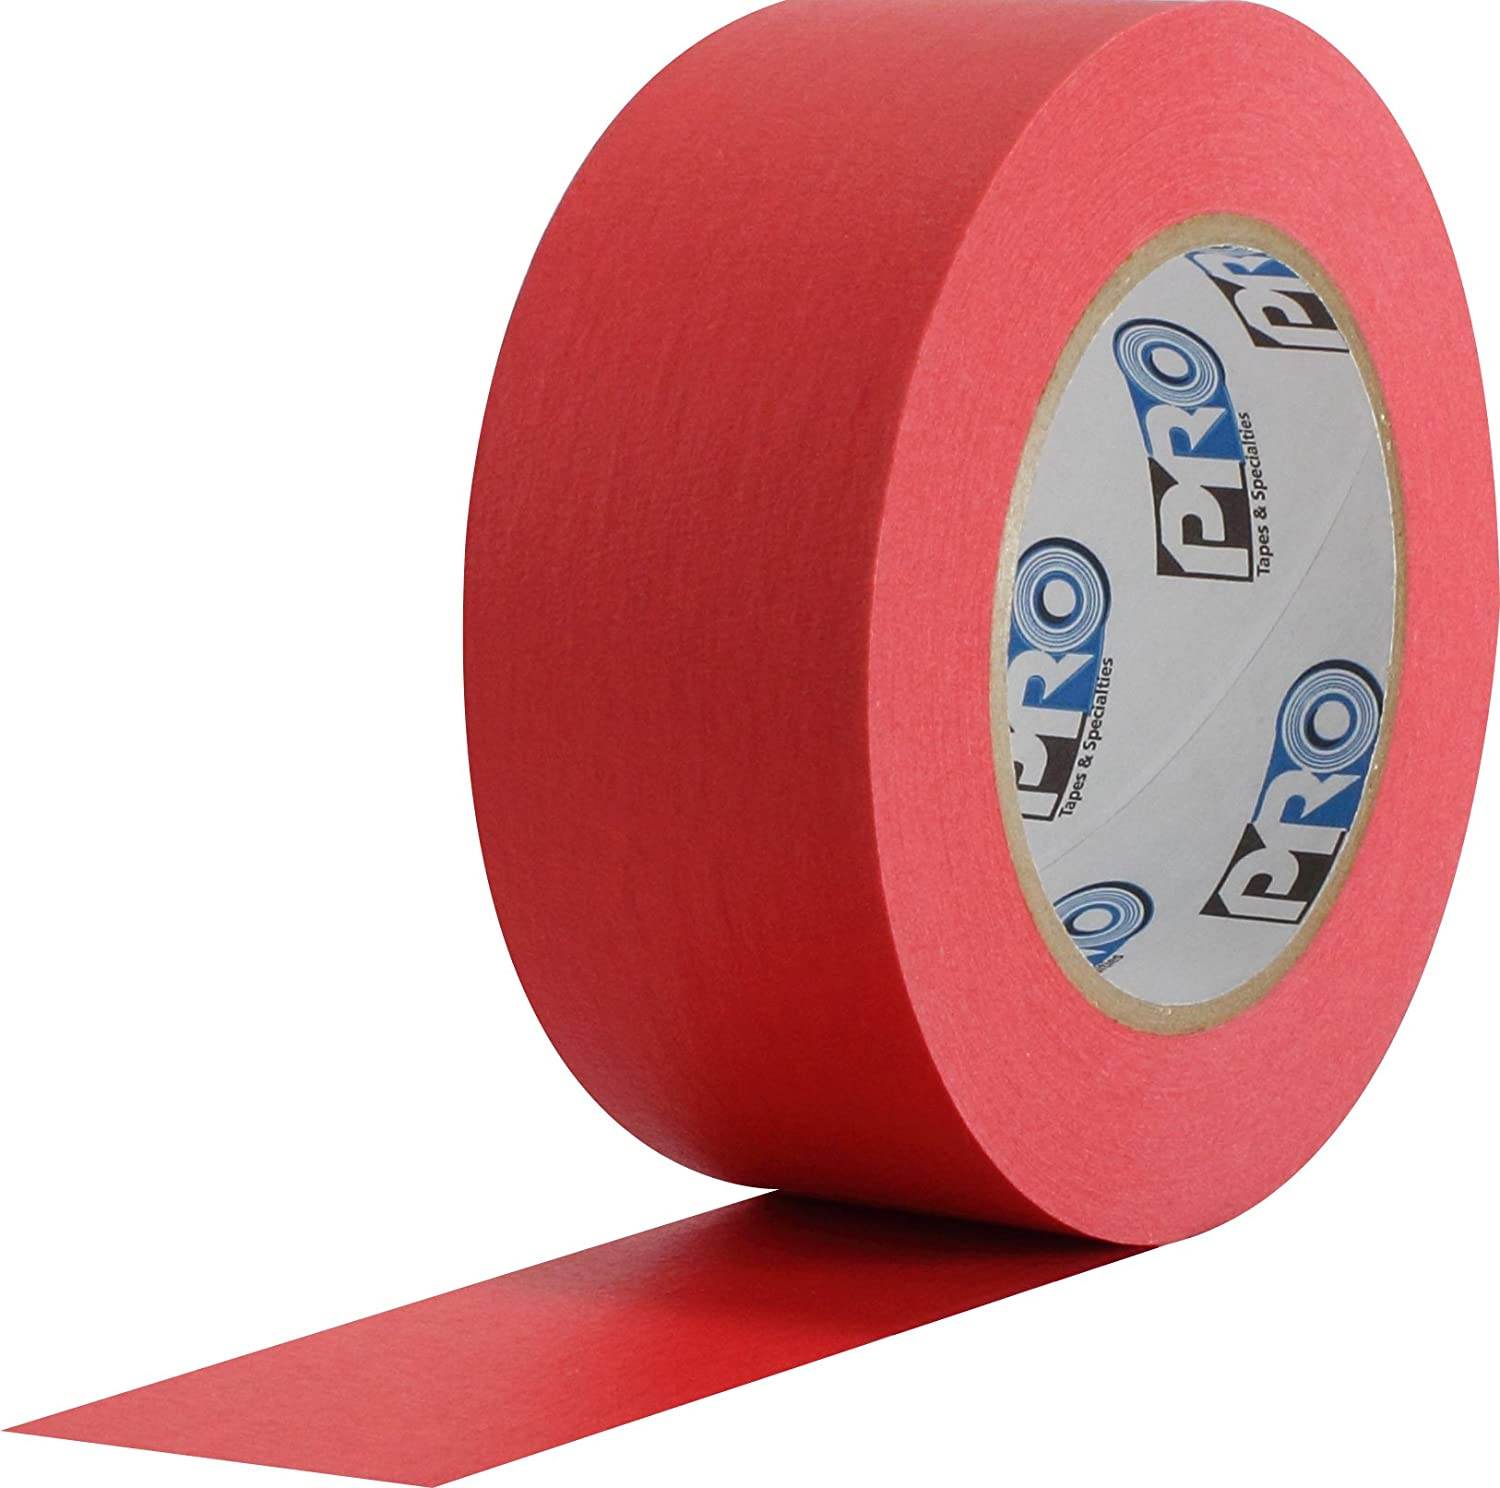 60 Yds Length X 1 Width Pack of 1 Red ProTapes Pro 46 Crepe Paper Masking Tape